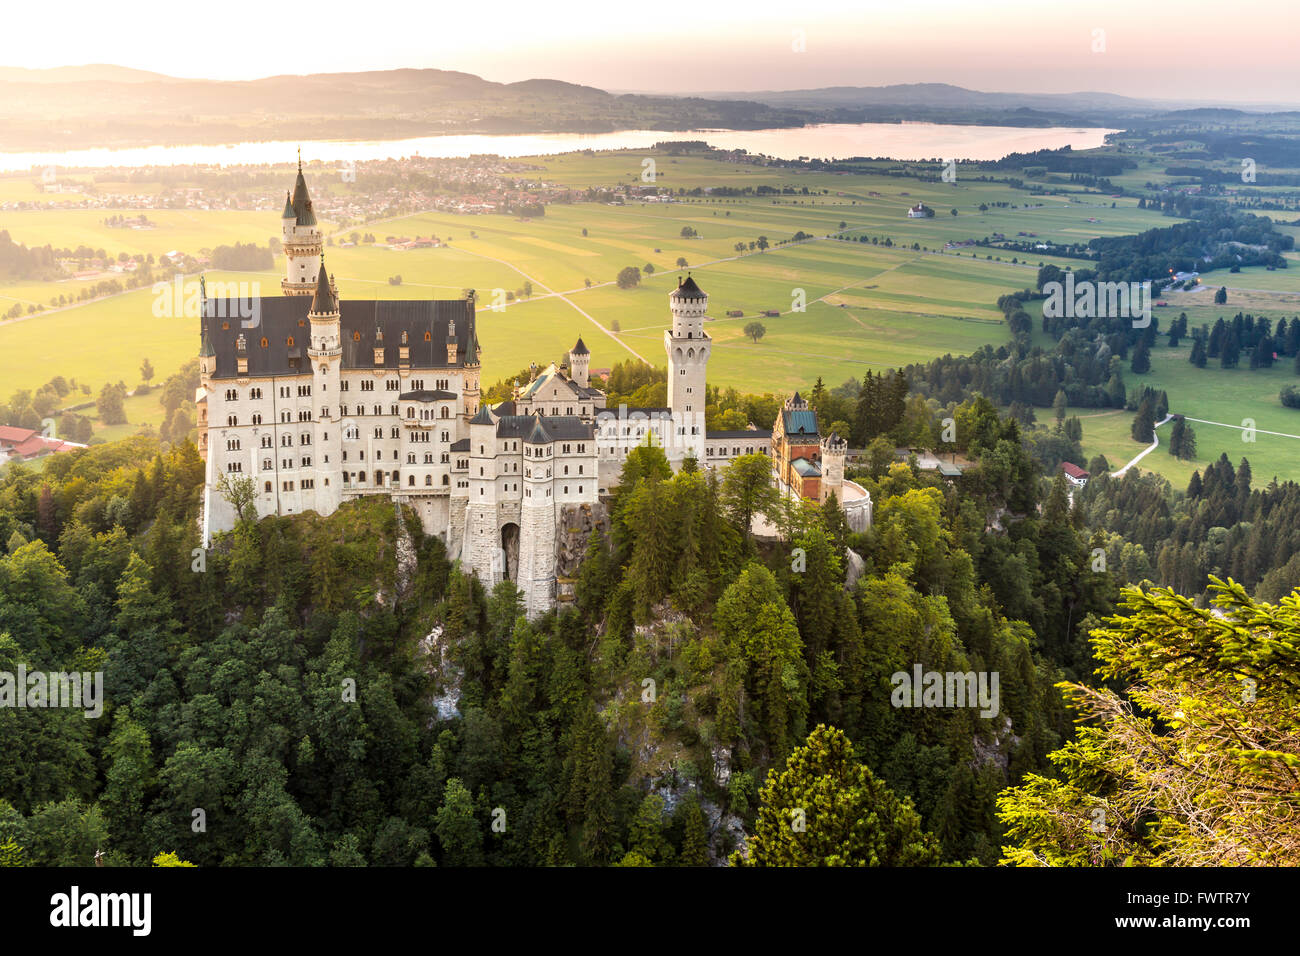 Beautiful summer sunset view of the Neuschwanstein castle at Fussen Bavaria, Germany - Stock Image